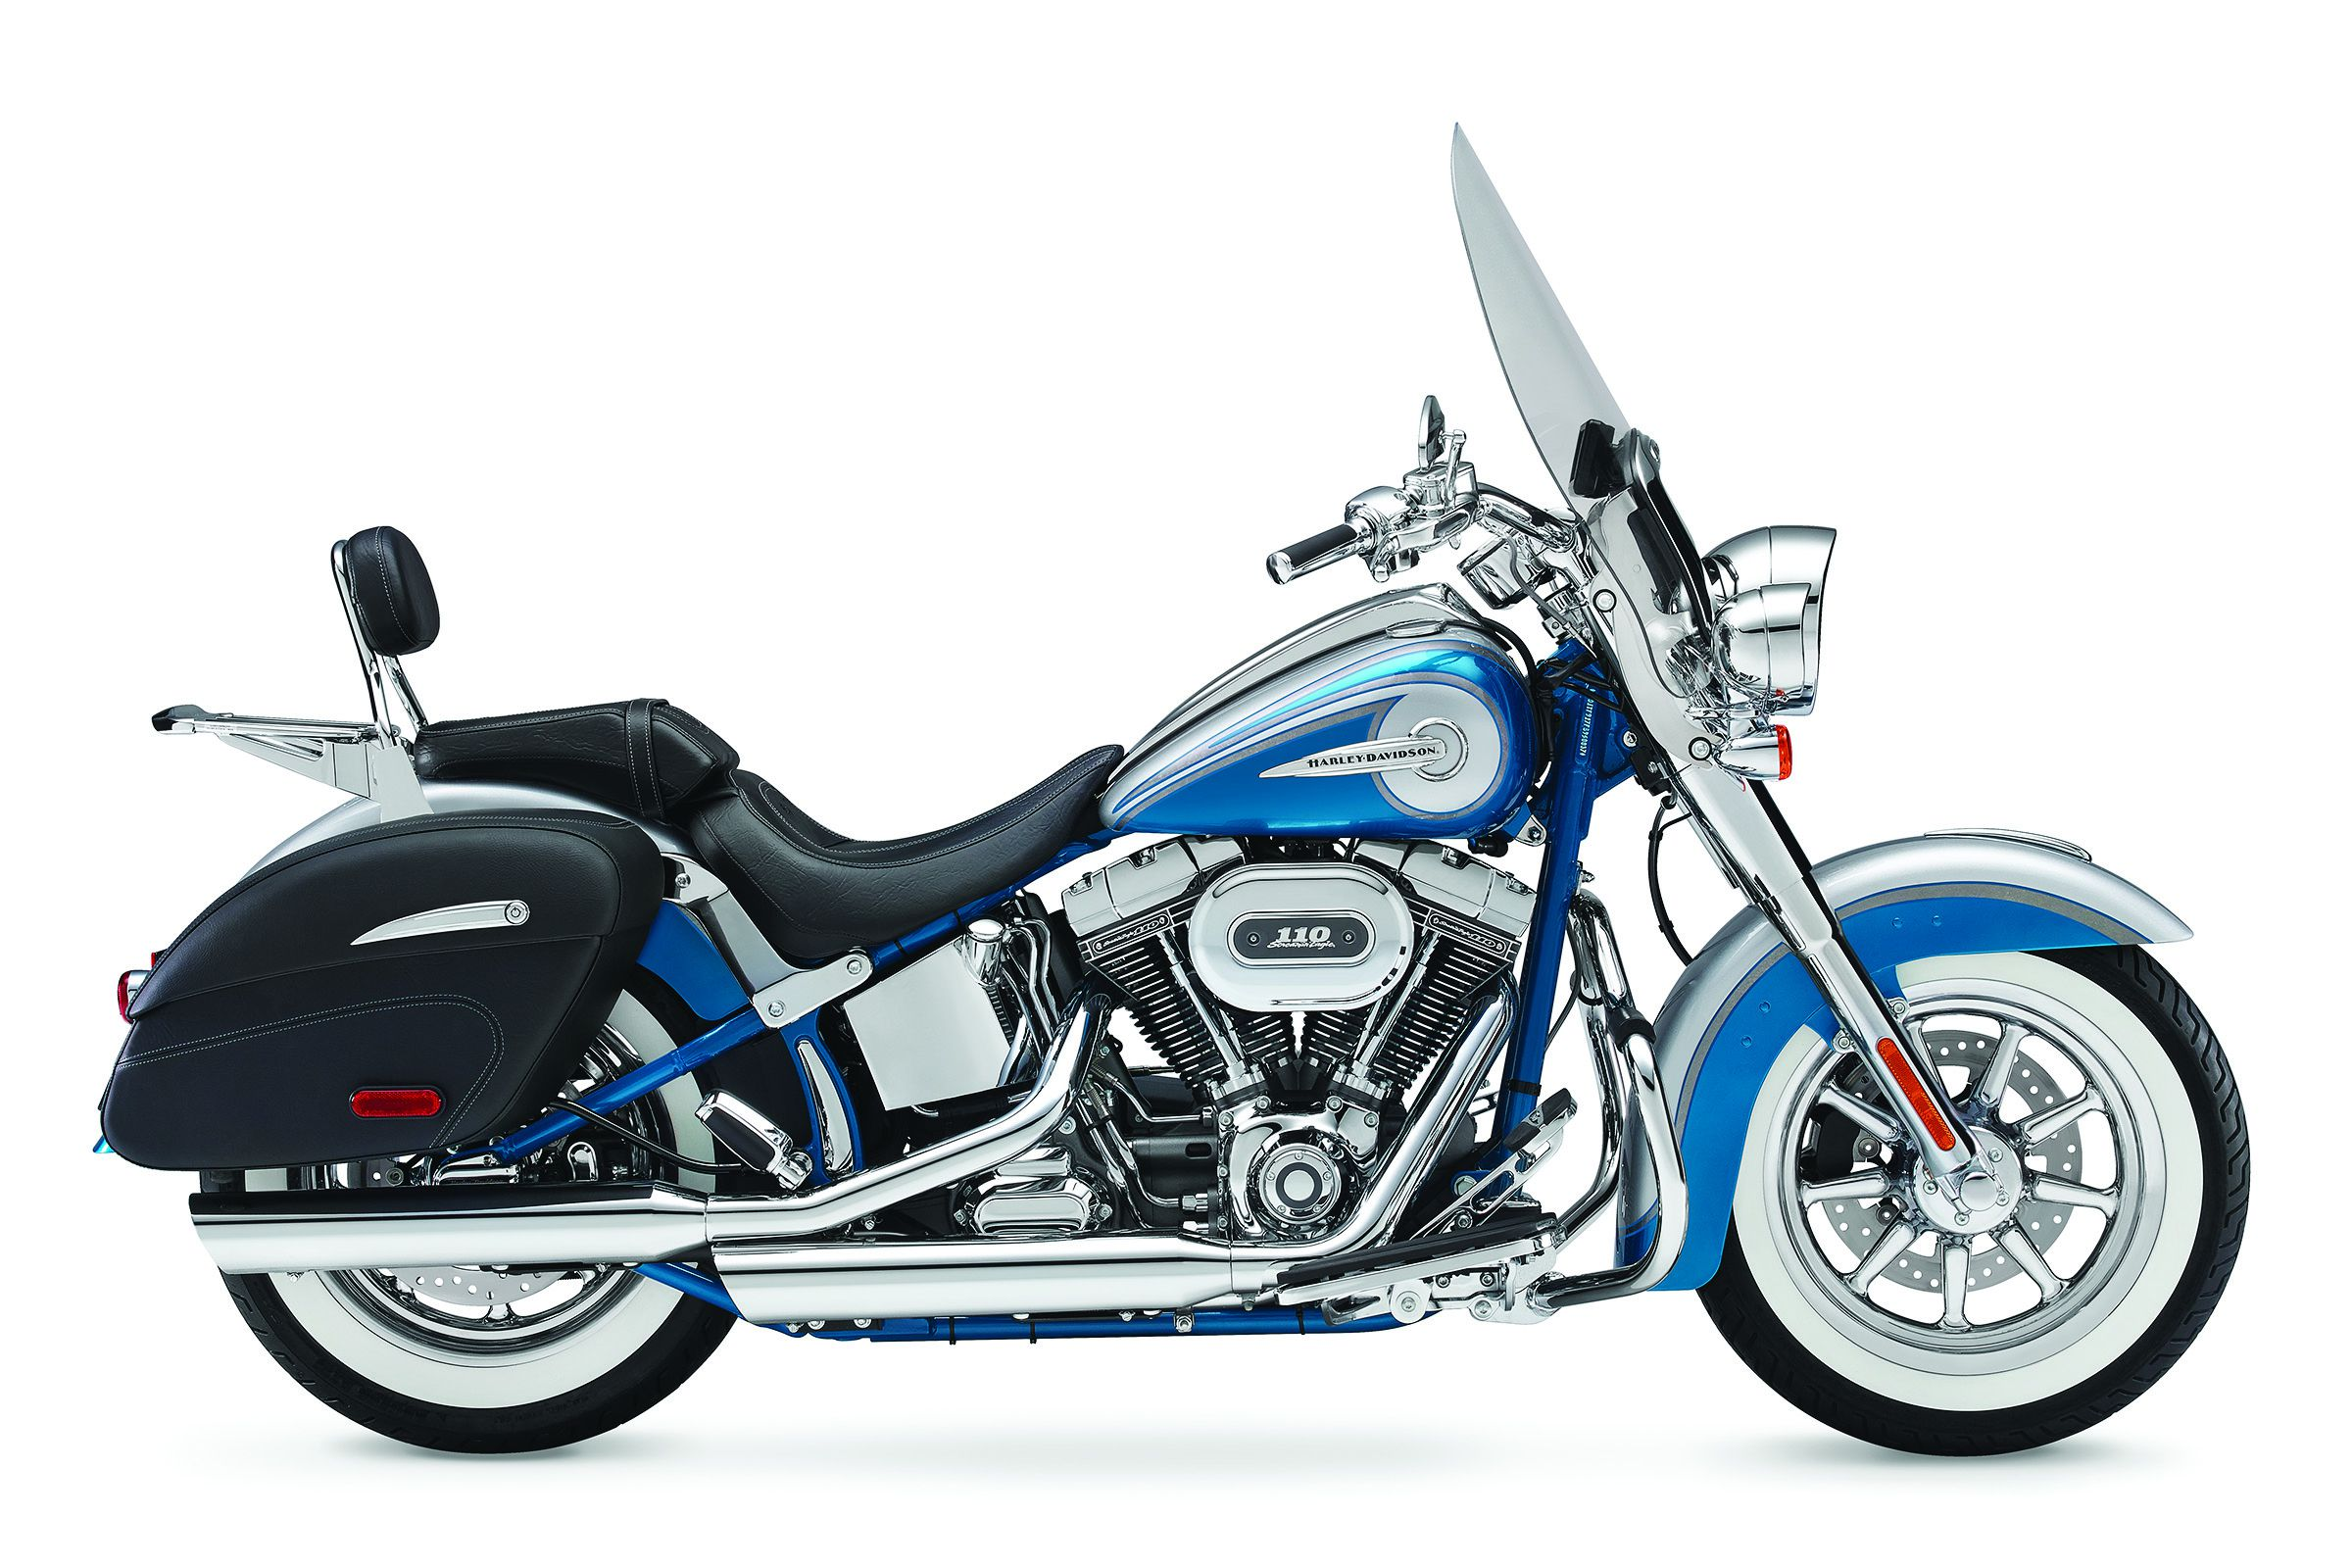 2015 Harley-Davidson Lineup Reveal: The Motor Company Is